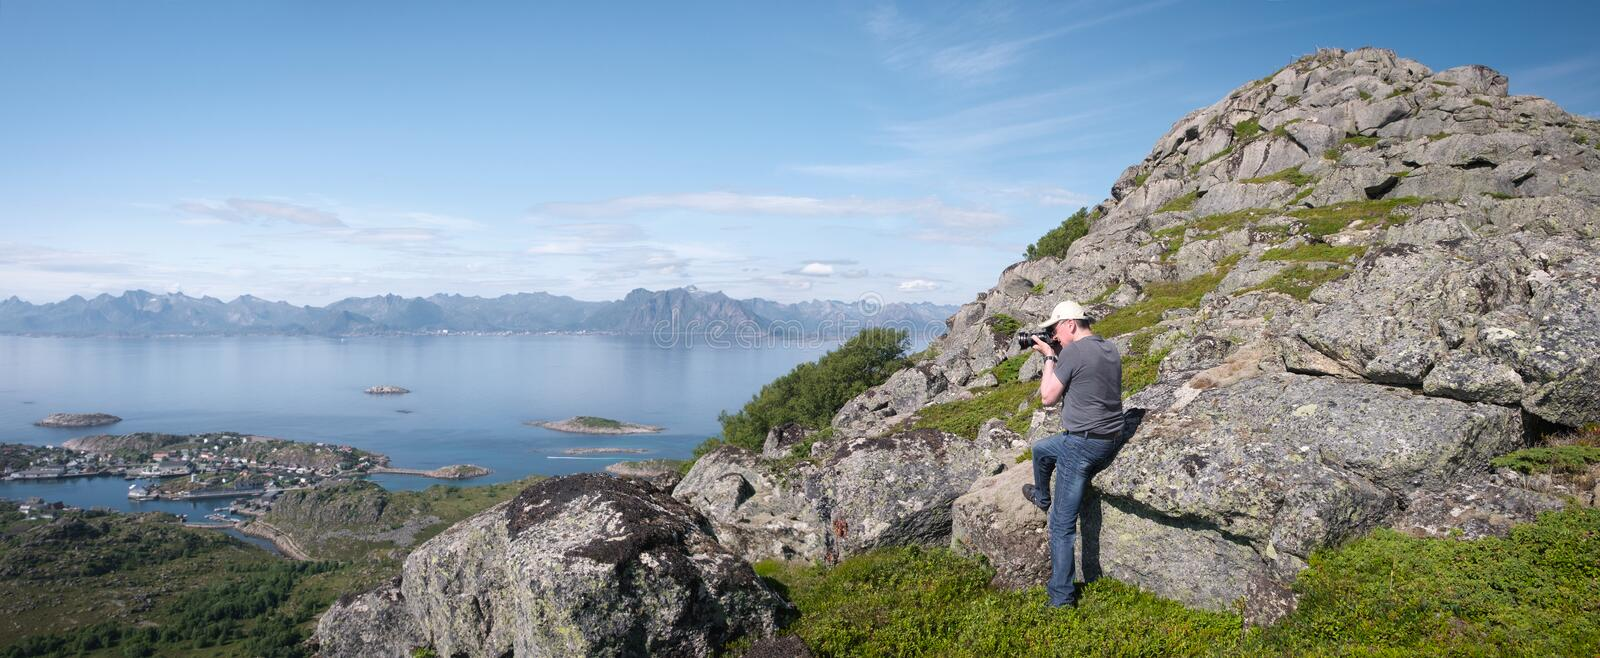 Aerial summer sea panorama view of norway mountains, lofoten, vacation concept, tourist photographs a seascape from above royalty free stock photos